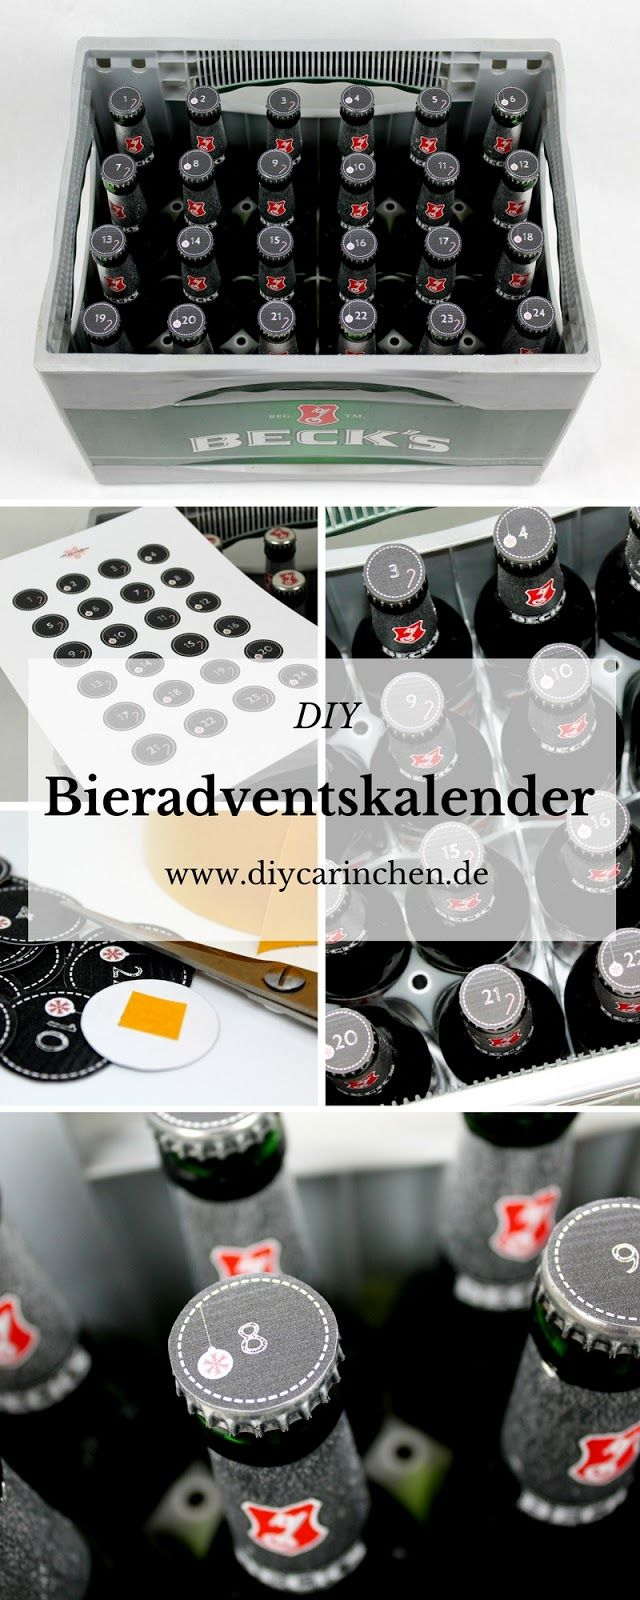 diy bieradventskalender mit gratis printable besondere geschenke f r m nner alle diys von. Black Bedroom Furniture Sets. Home Design Ideas